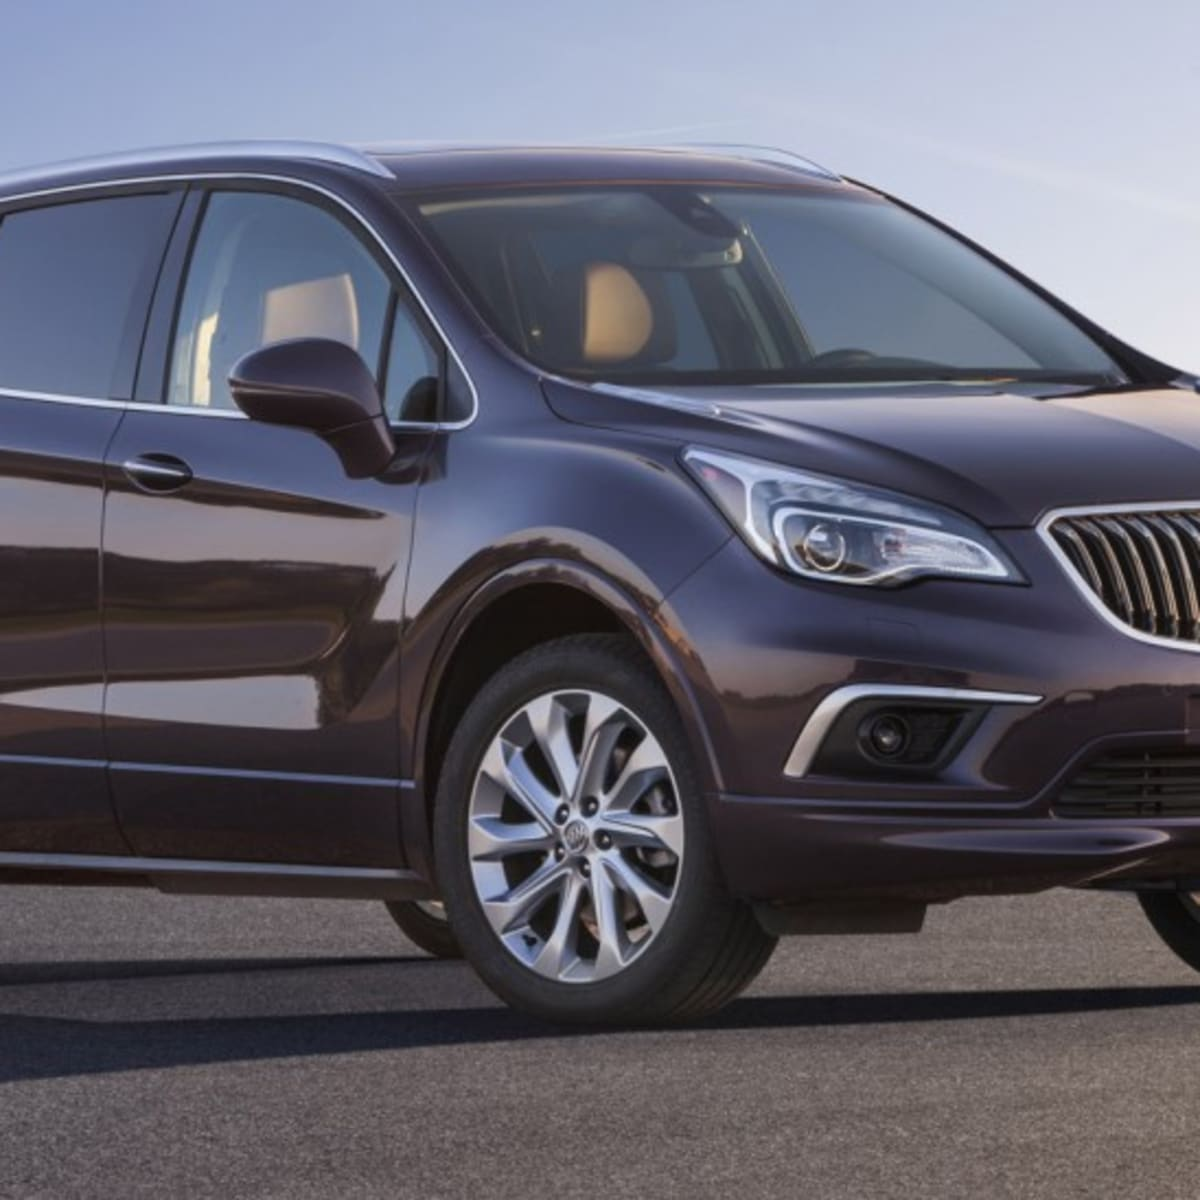 Holden S Captiva Replacements Firming As Details Of New